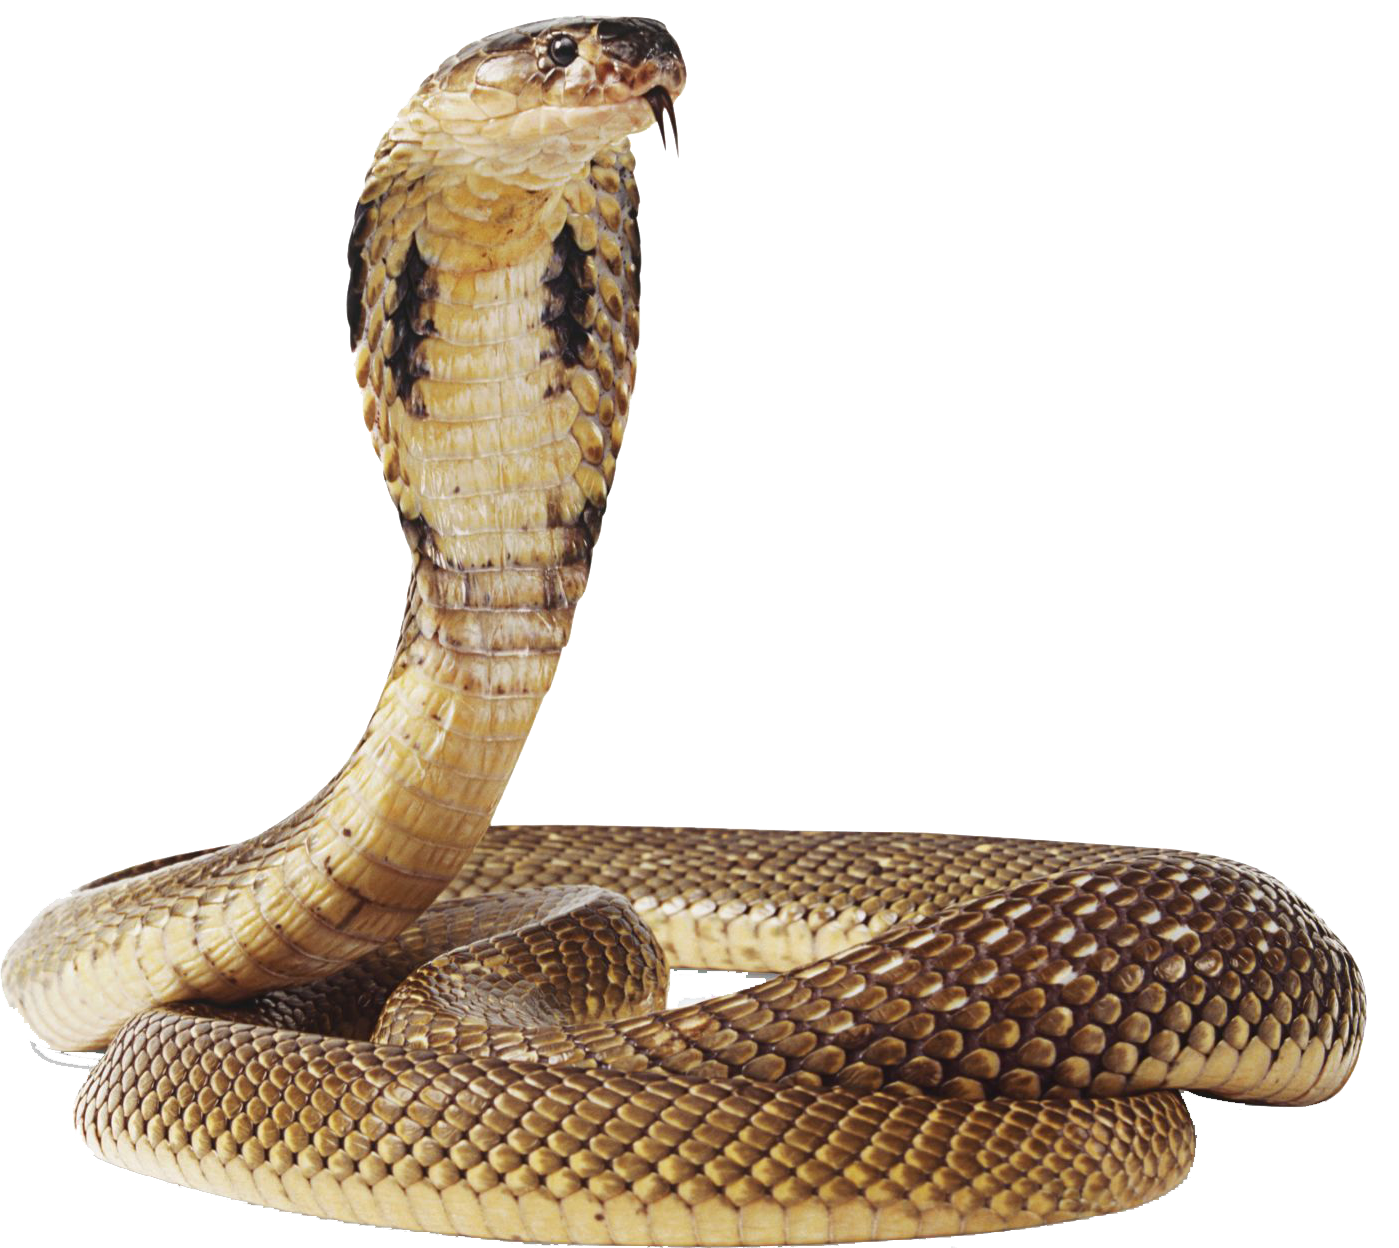 Snake clipart poisonous snake. Hd png transparent images